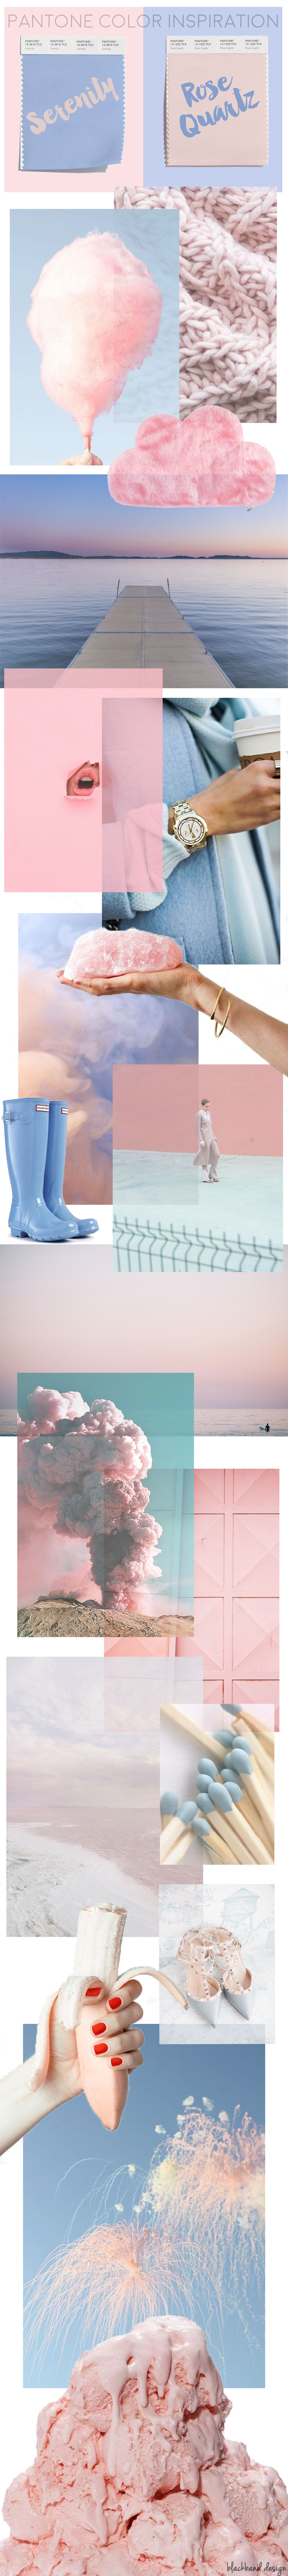 Blackband_Design_2016_Pantone_Color_of_the_Year_serenity_rose-quartz_inspiration